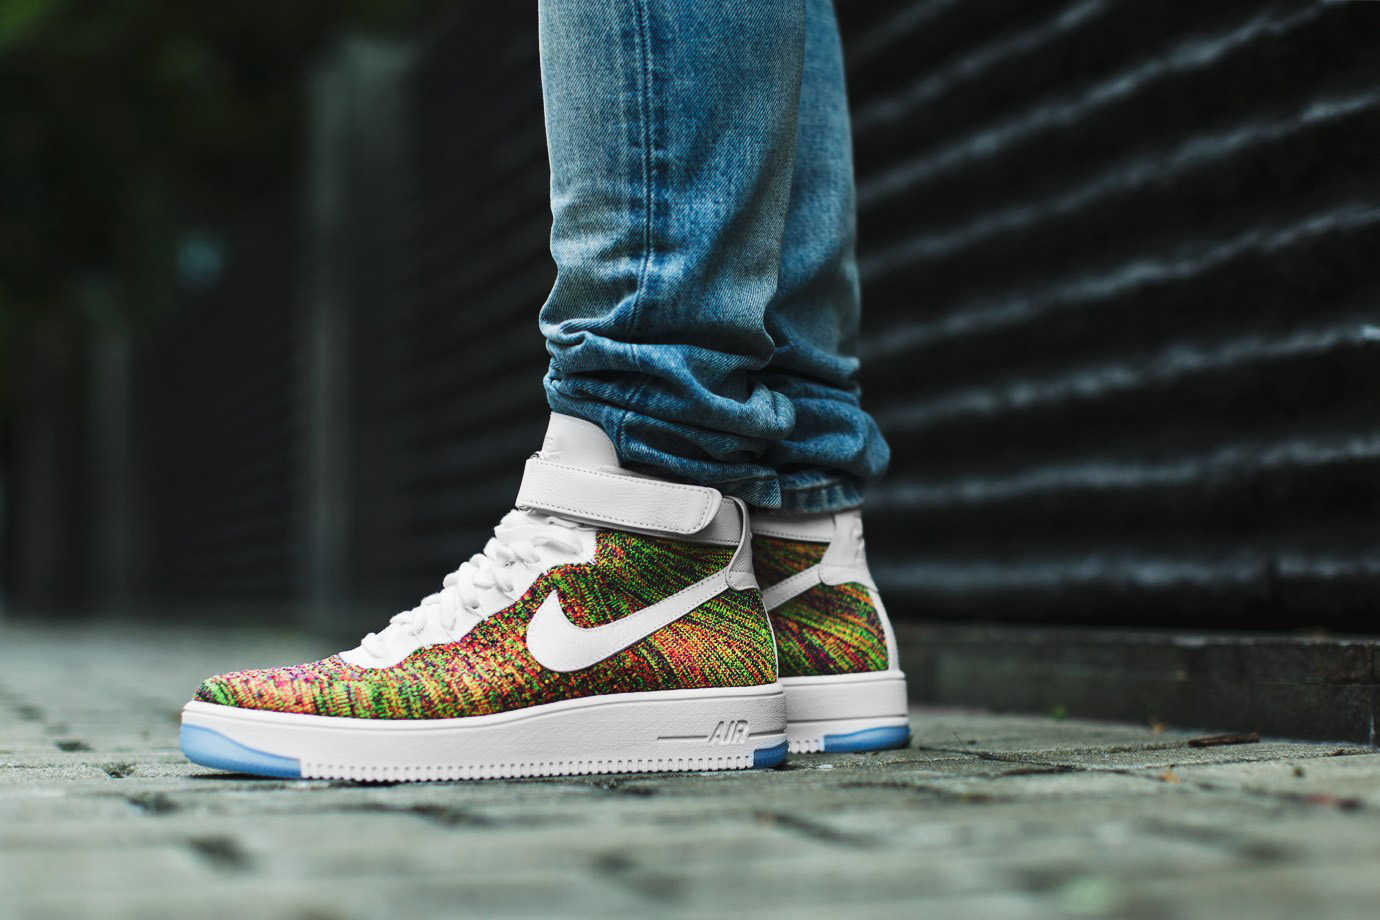 Buy nike air force 1 ultra flyknit > Up to 53% Discounts